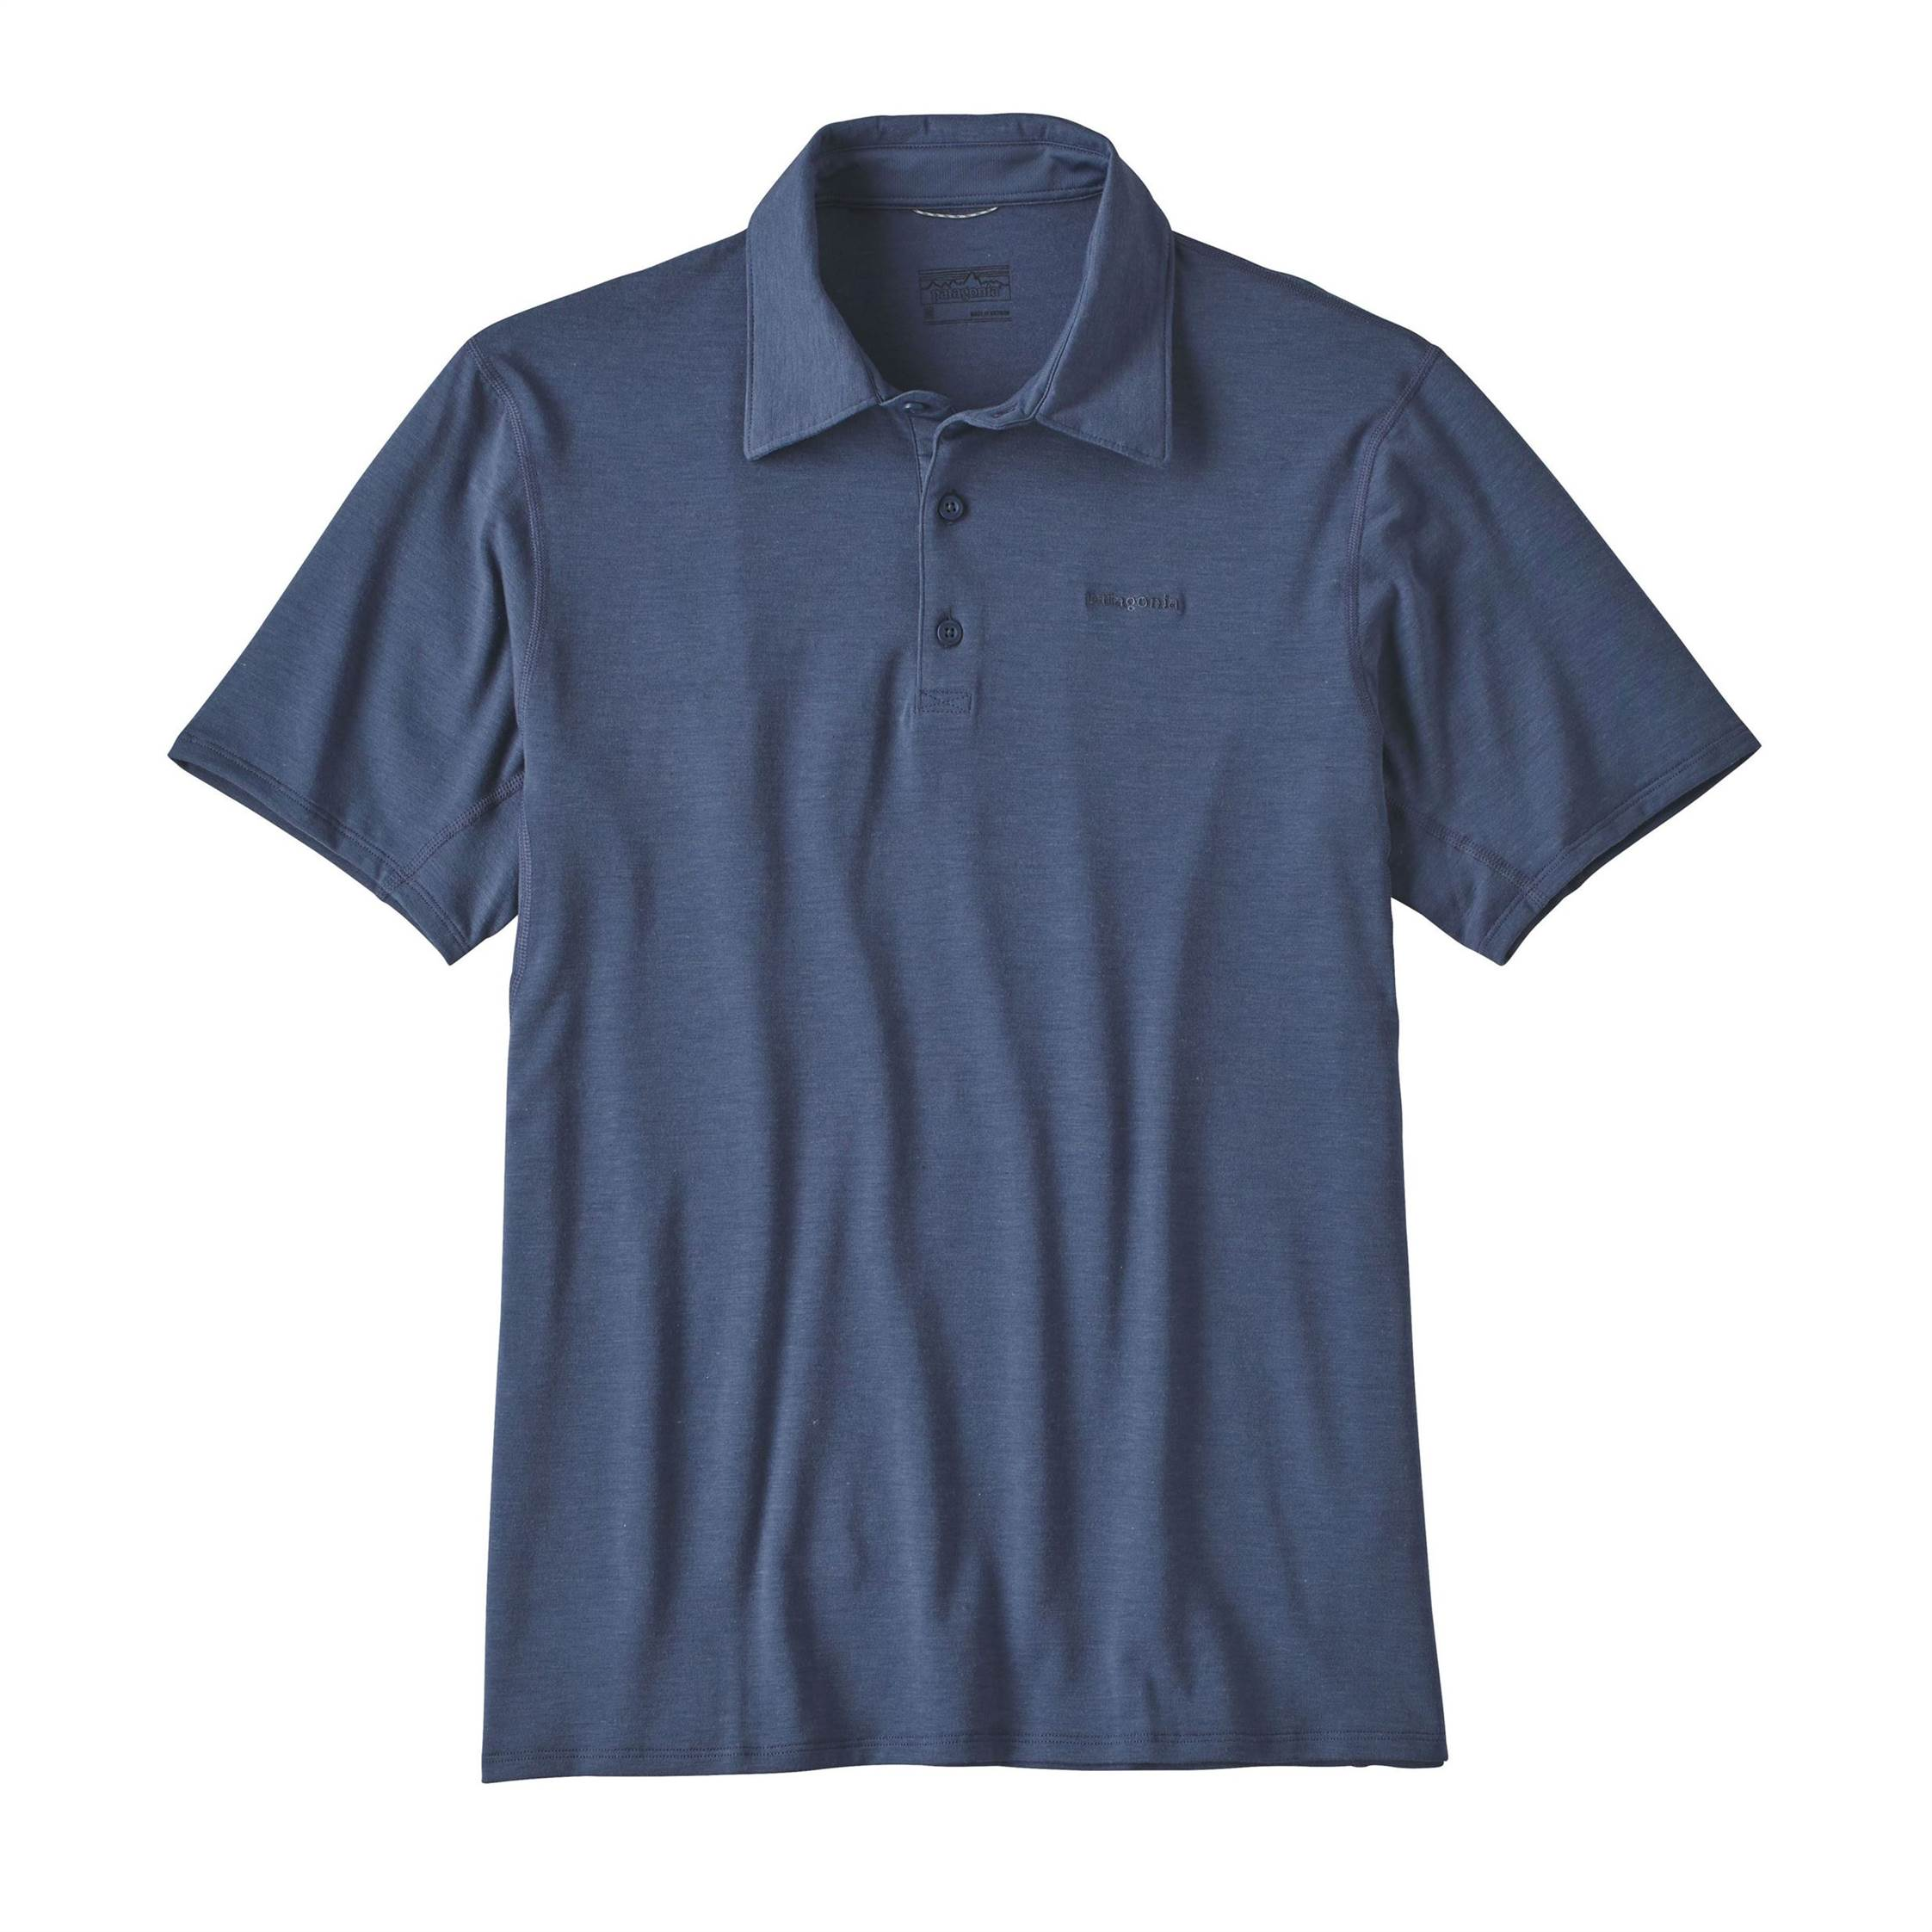 Cactusflats Polo -  Men's